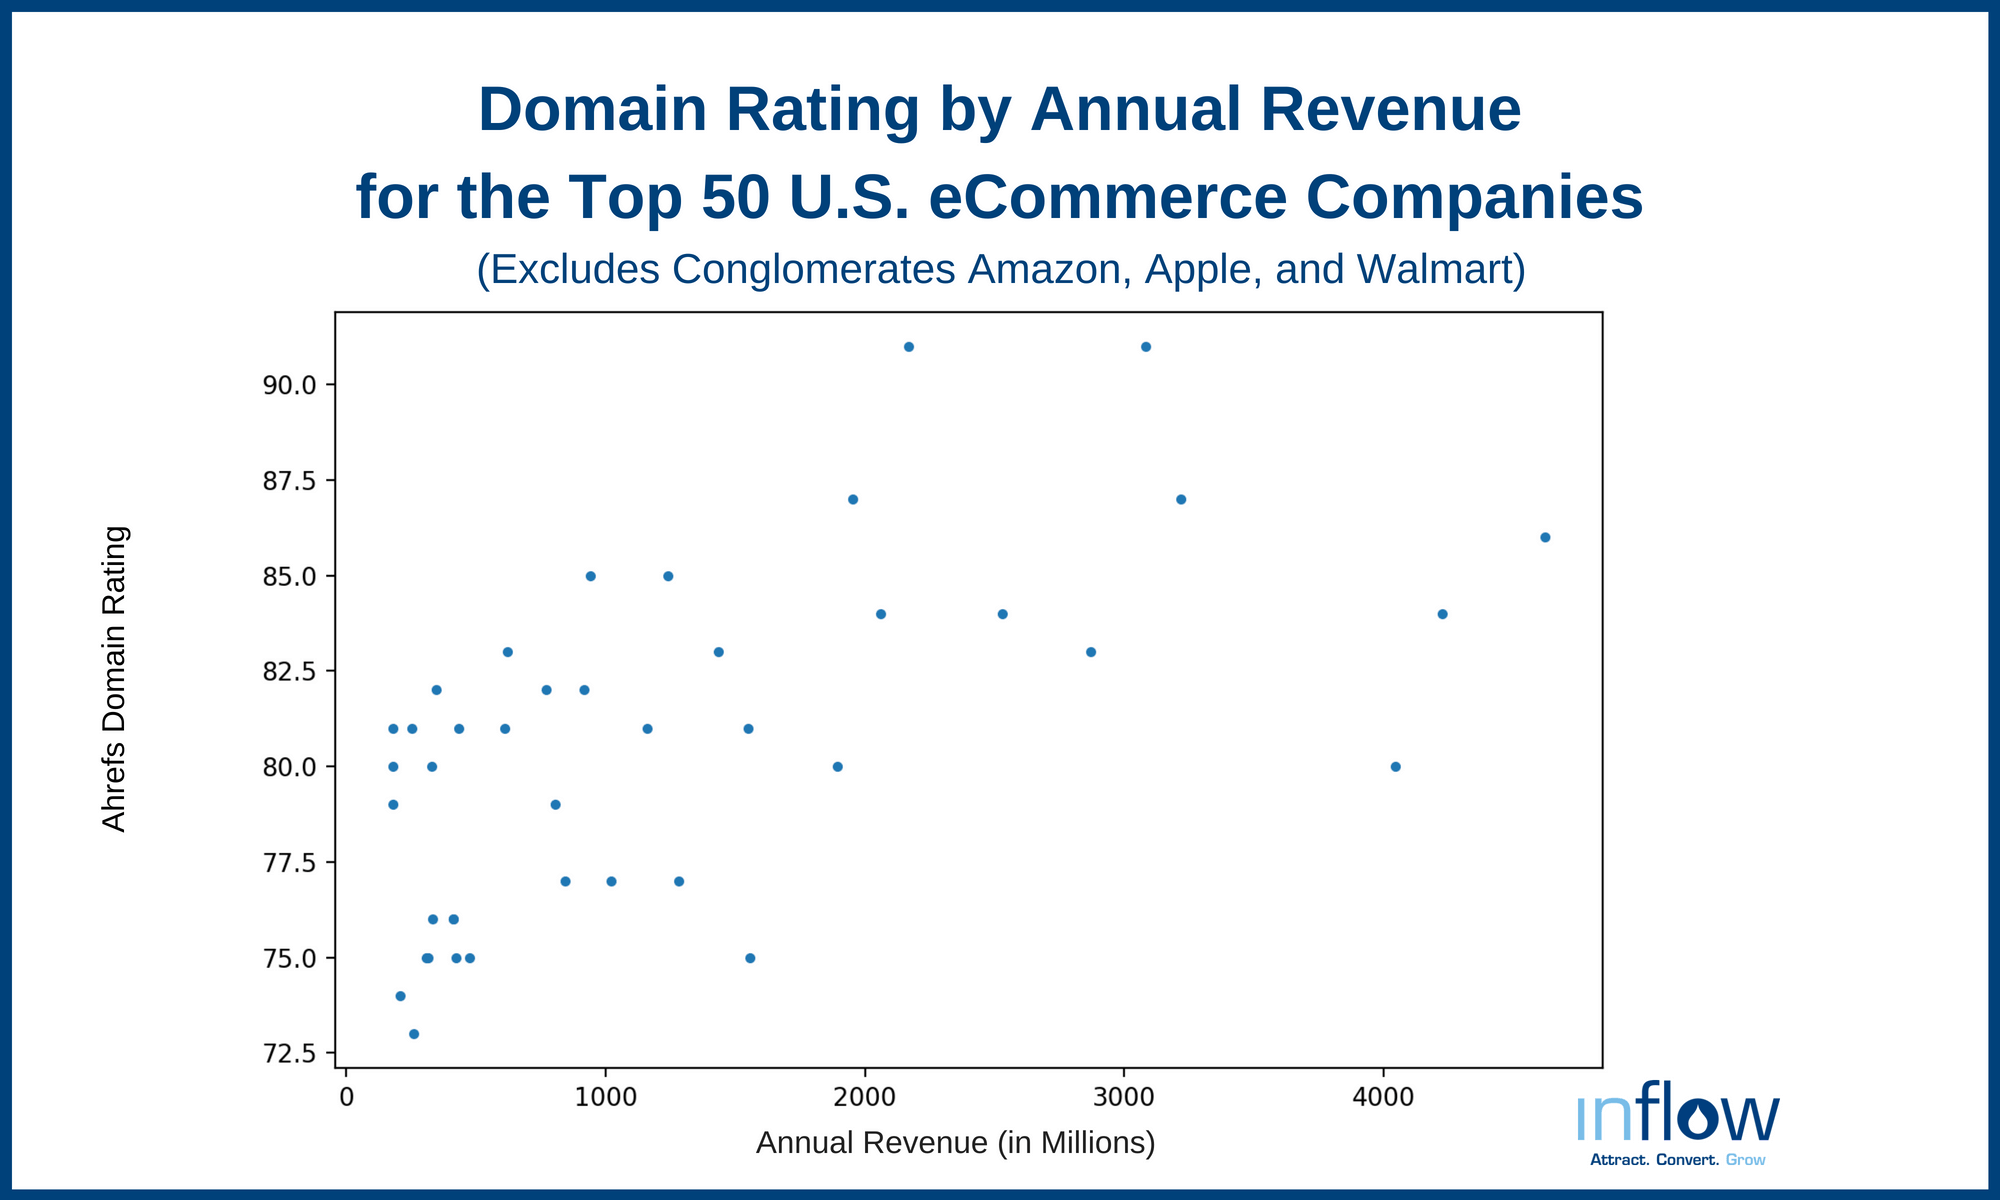 Domain Rating by Annual Revenue for the Top 50 U.S. eCommerce Companies